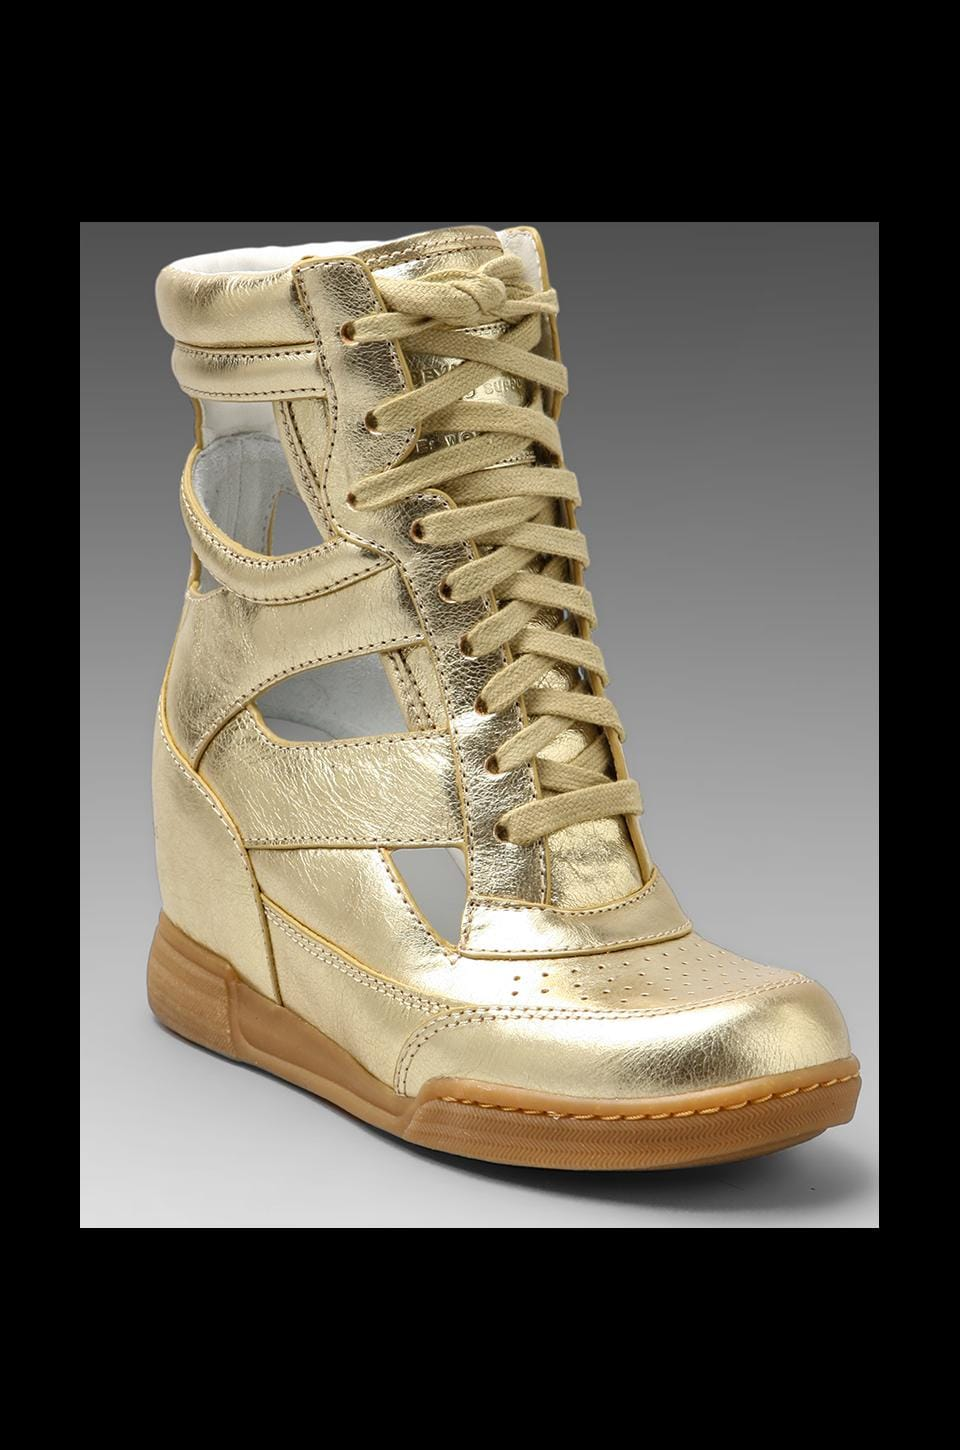 Marc by Marc Jacobs Metallic Cut Out Wedge Sneaker in Gold